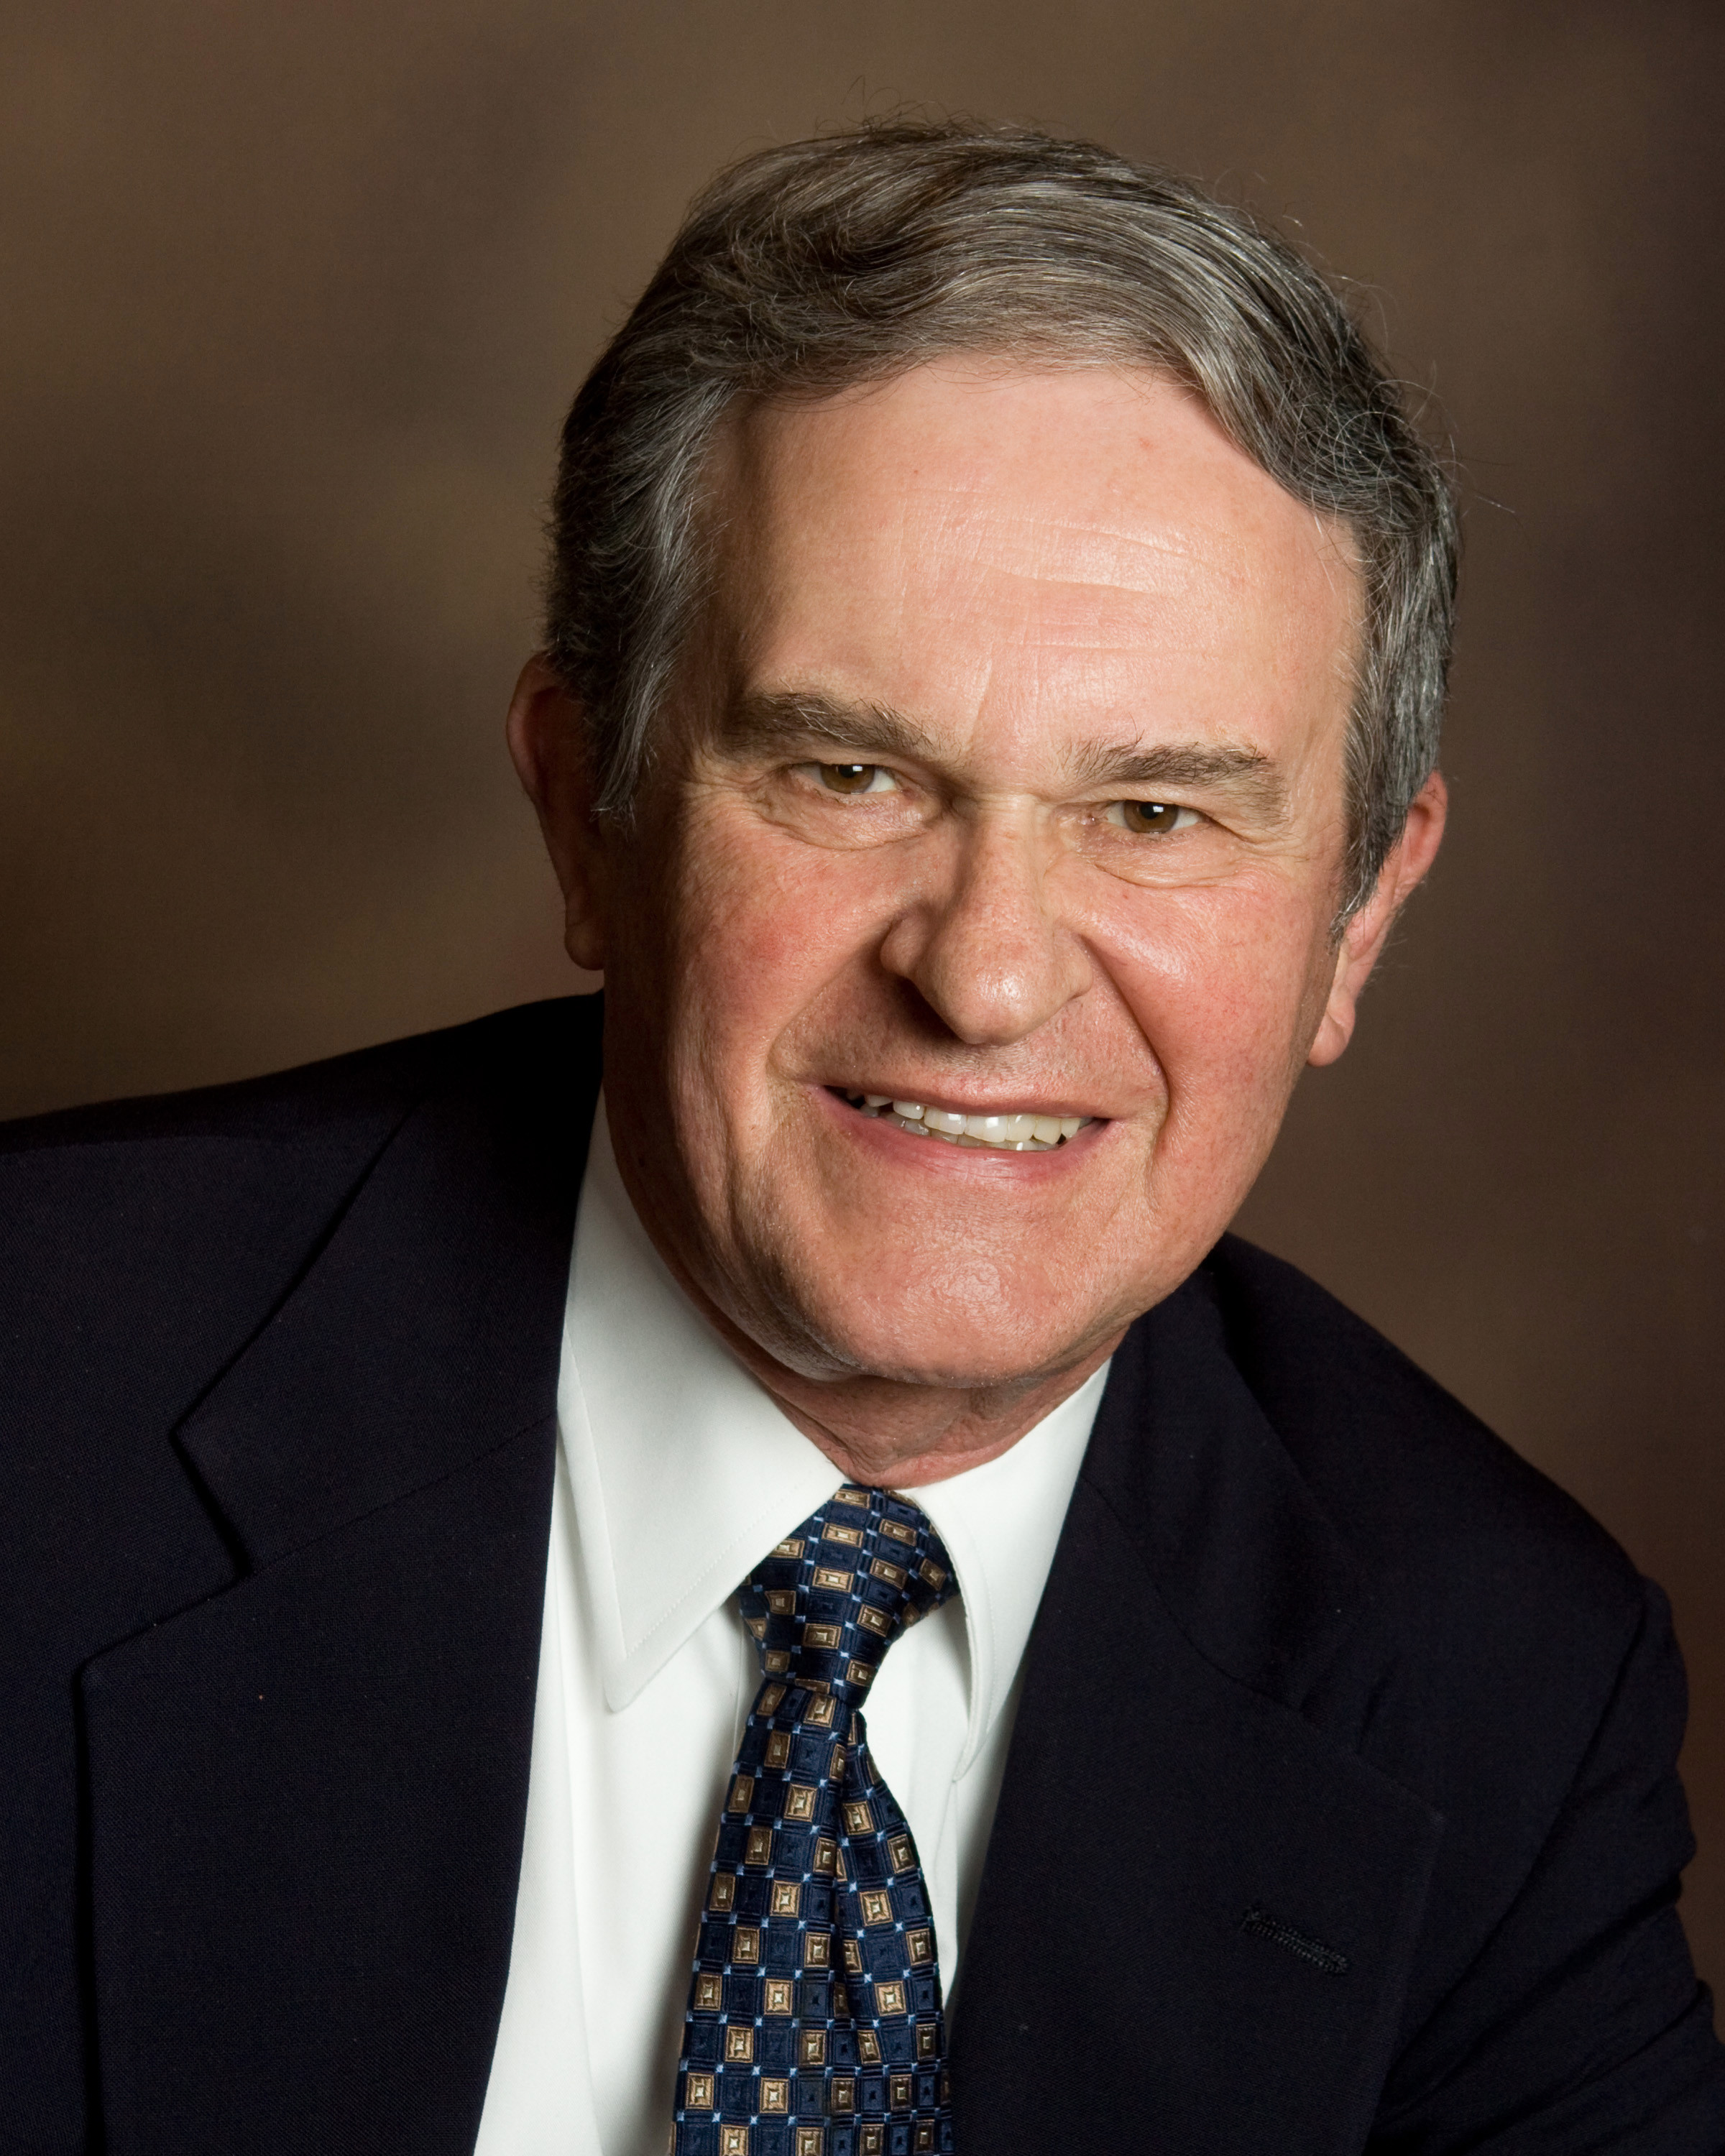 Portrait of Marvin Blickenstaff smiling in a suit